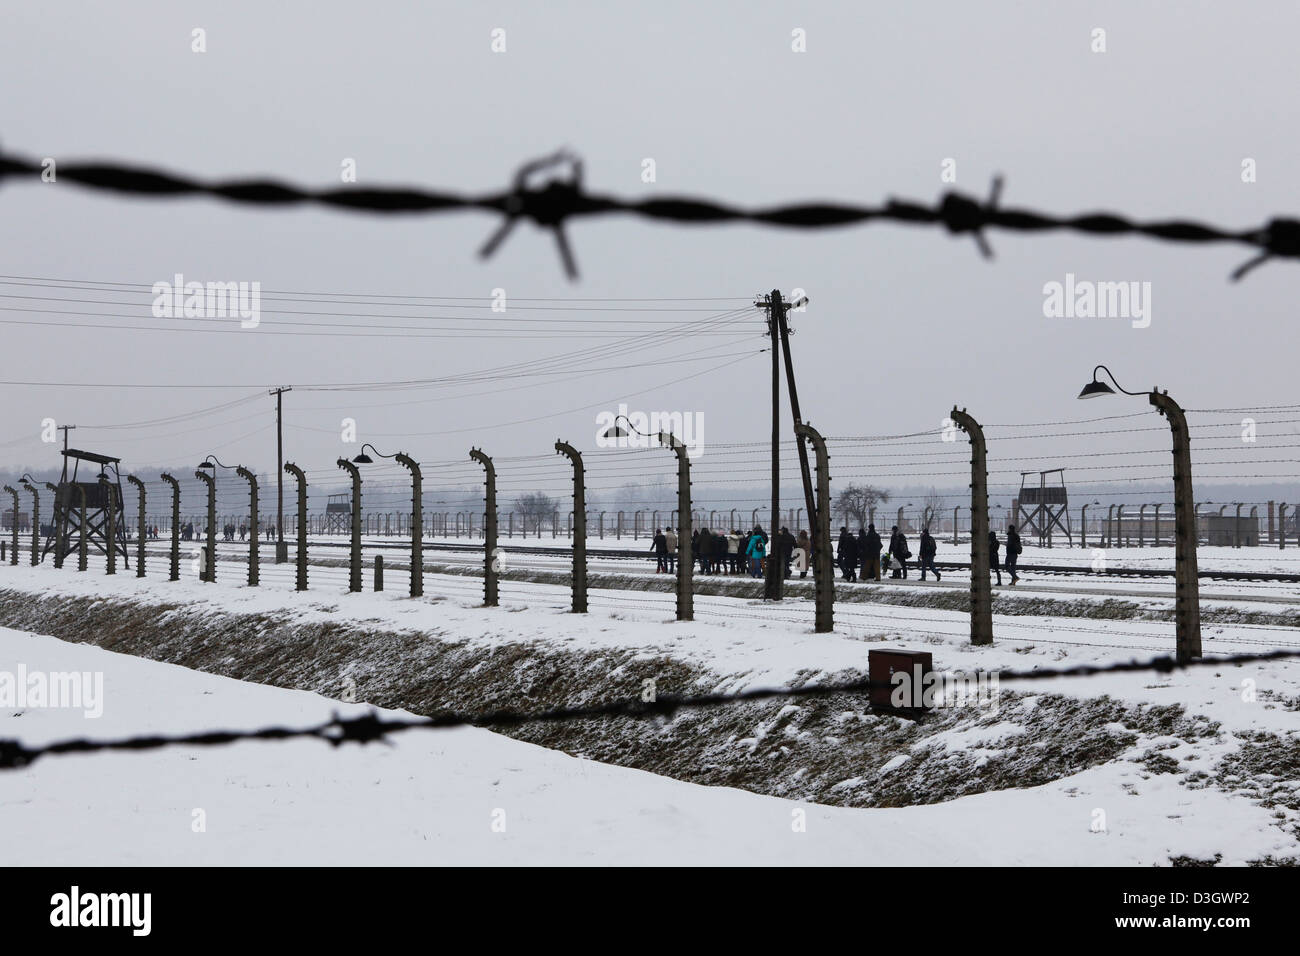 The barbed wire and fences of Birkenau concentration camp (Auschwitz II) at Oswiecim in Poland. - Stock Image